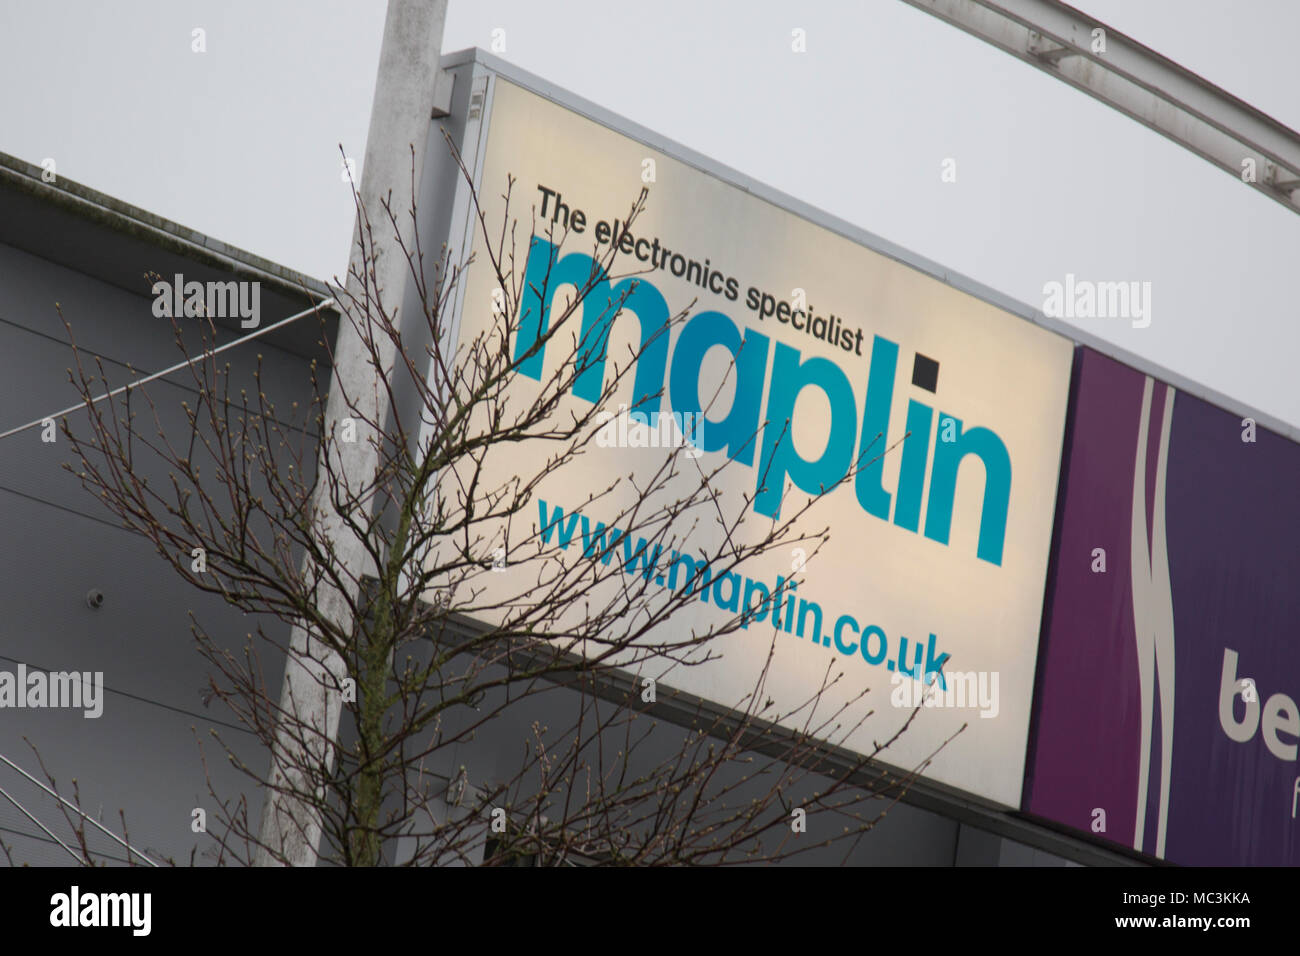 Maplin Electronics superstore sign above the shop in Kidderminster Worcestershire April 2018 - Stock Image